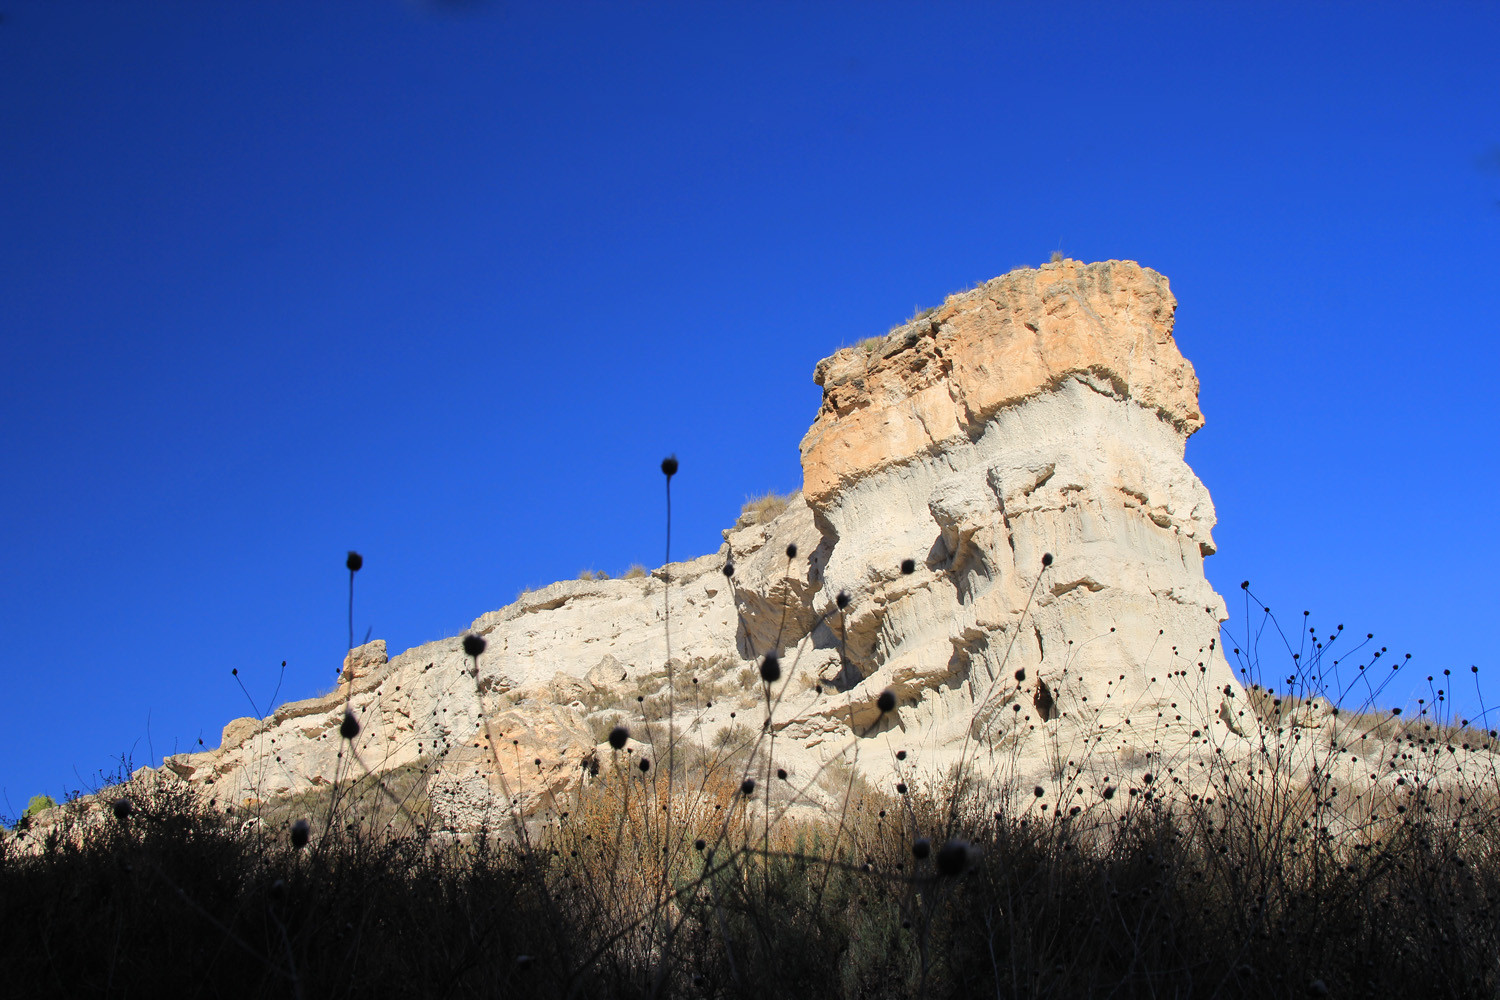 A Rock Formation near Fondales